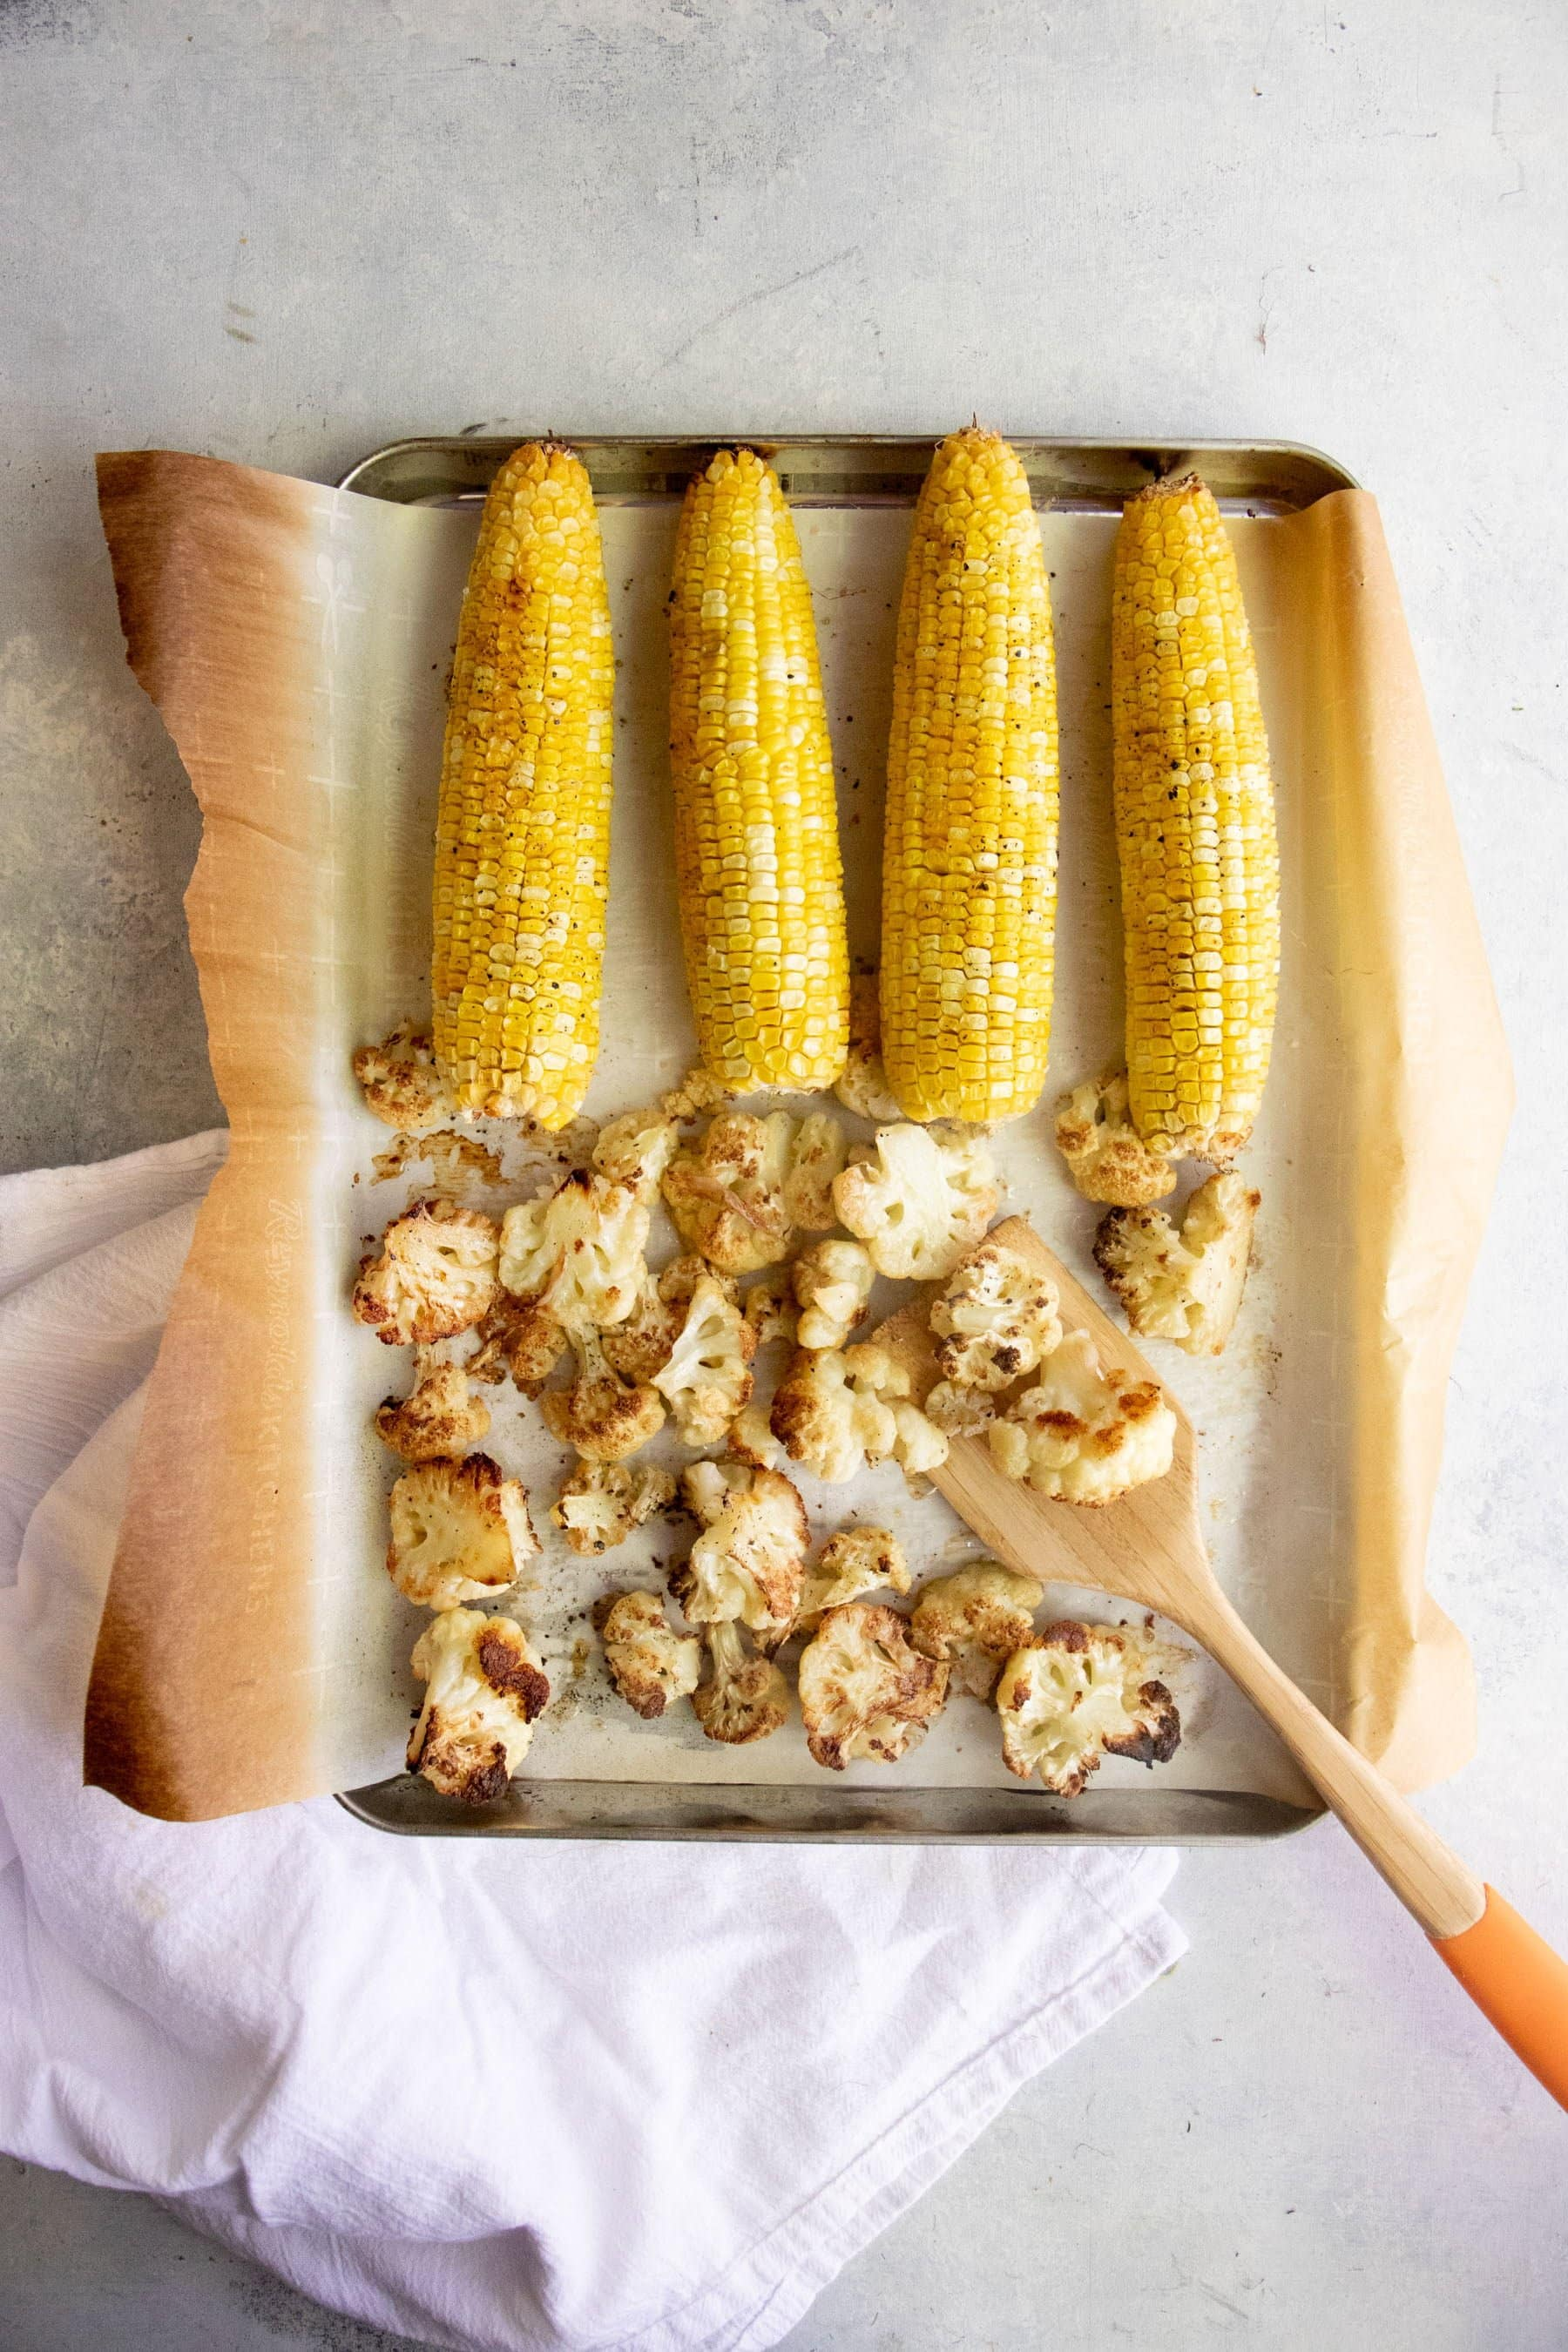 Ears of corn and cut cauliflower arranged on a baking sheet lined with parchment